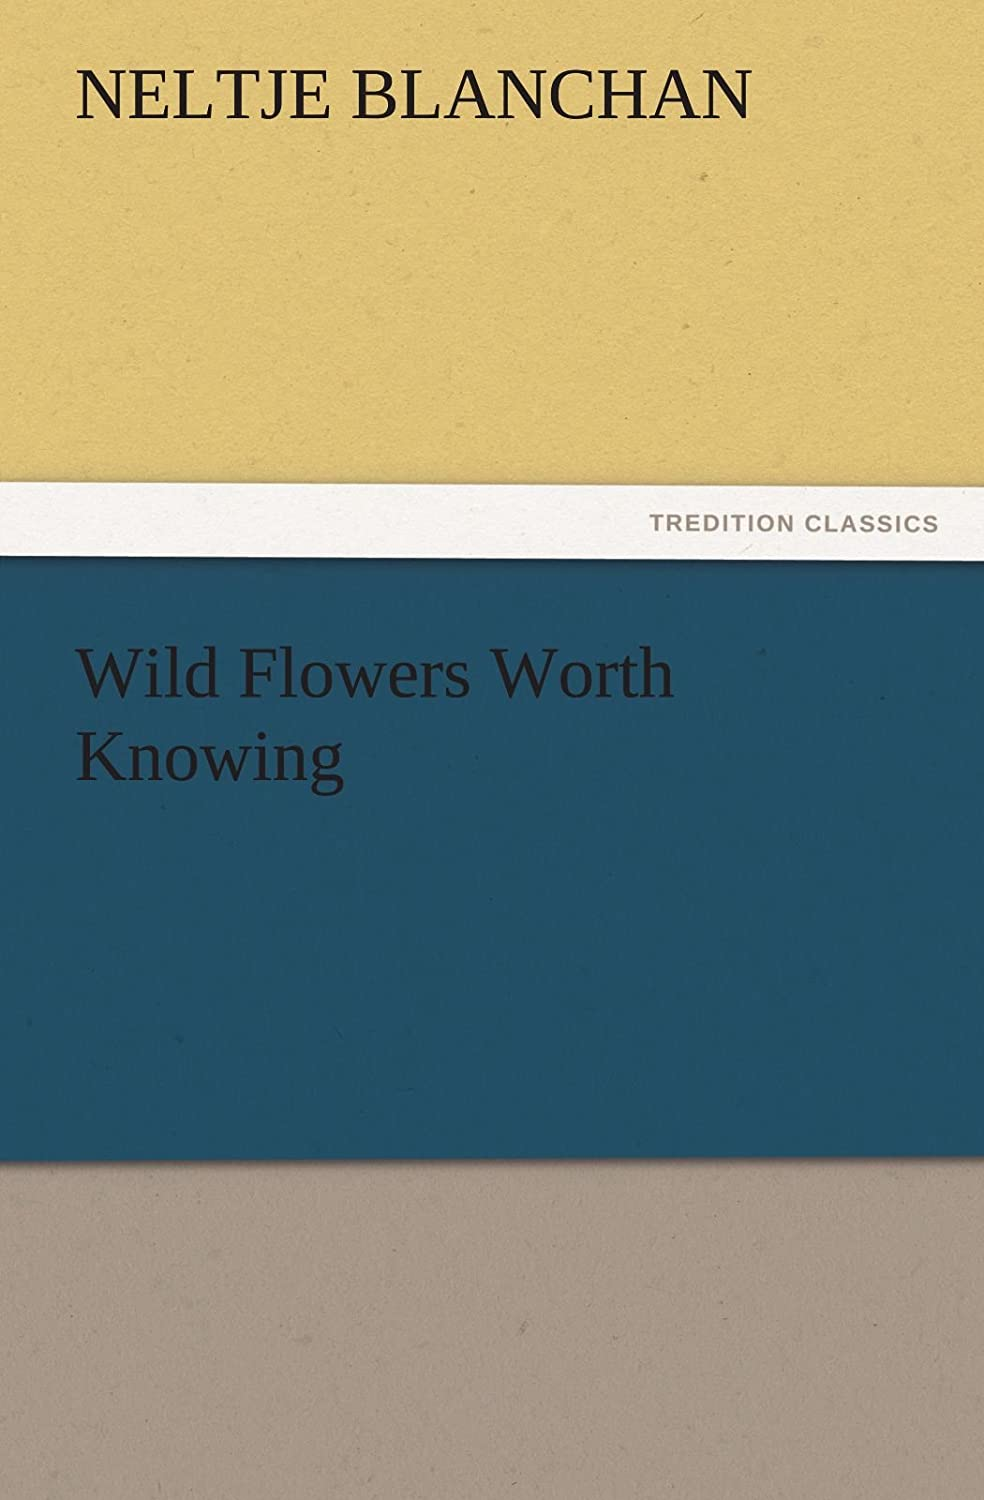 Wild Flowers Worth Knowing (TREDITION CLASSICS)